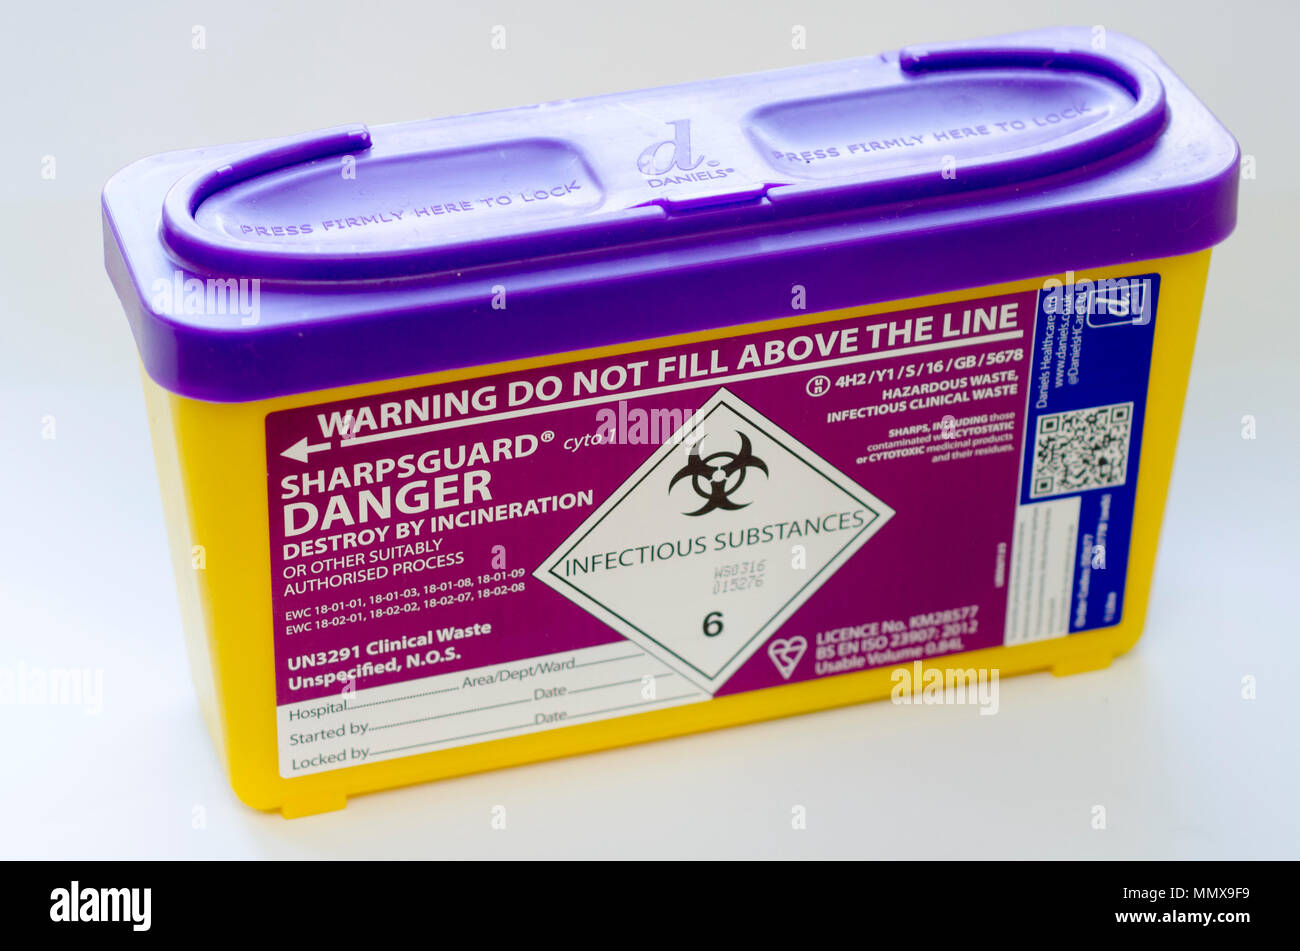 Sharps bin or sharps box for disposal of medical needles - Stock Image